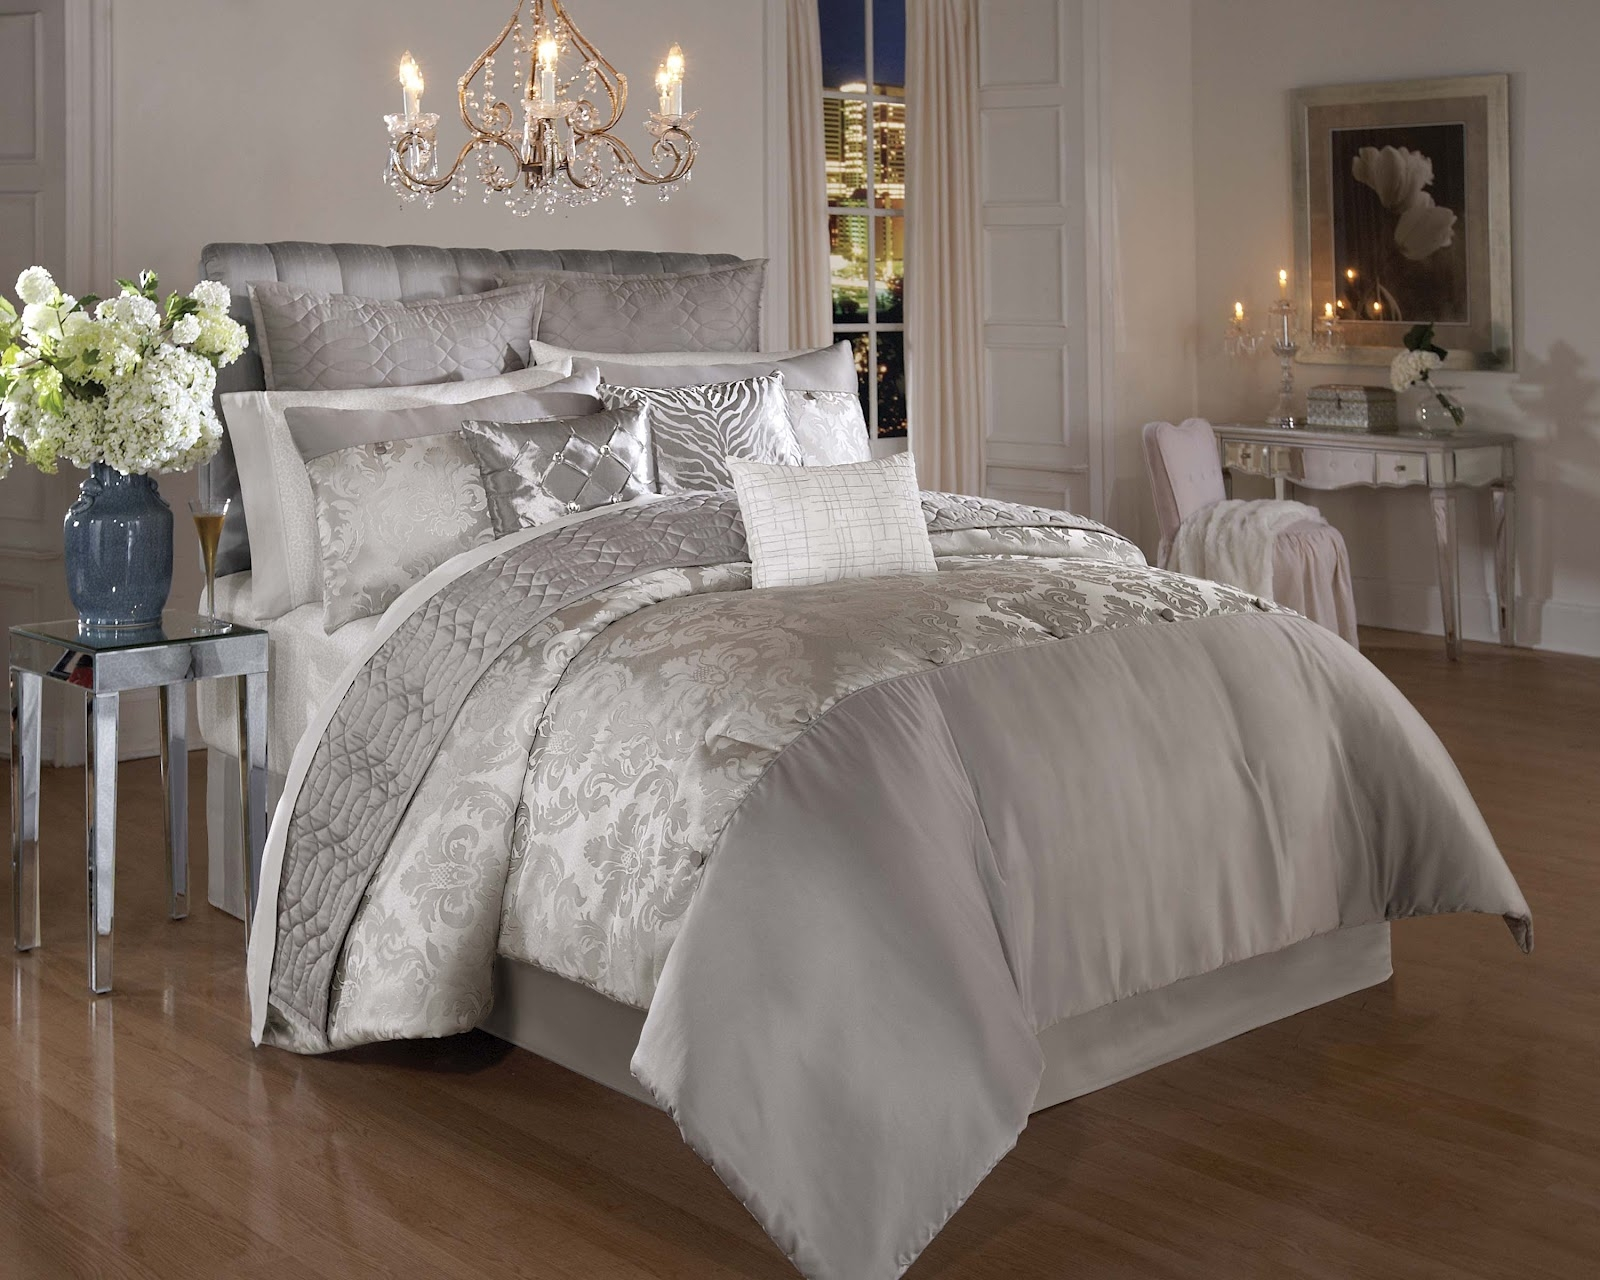 Luxury Silver Bedroom Set Painting